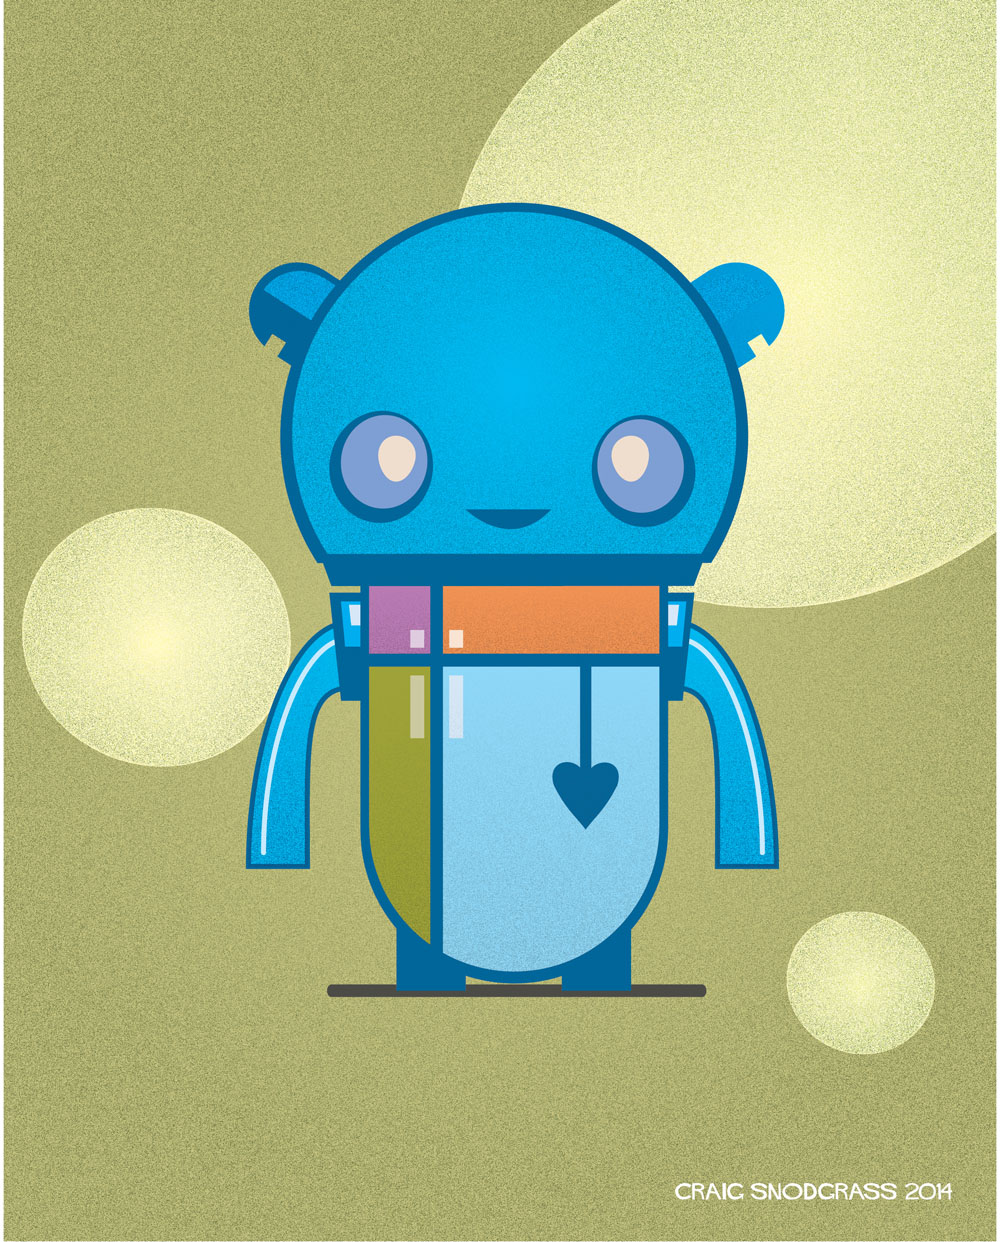 blue-bot-vector-8x10.jpg